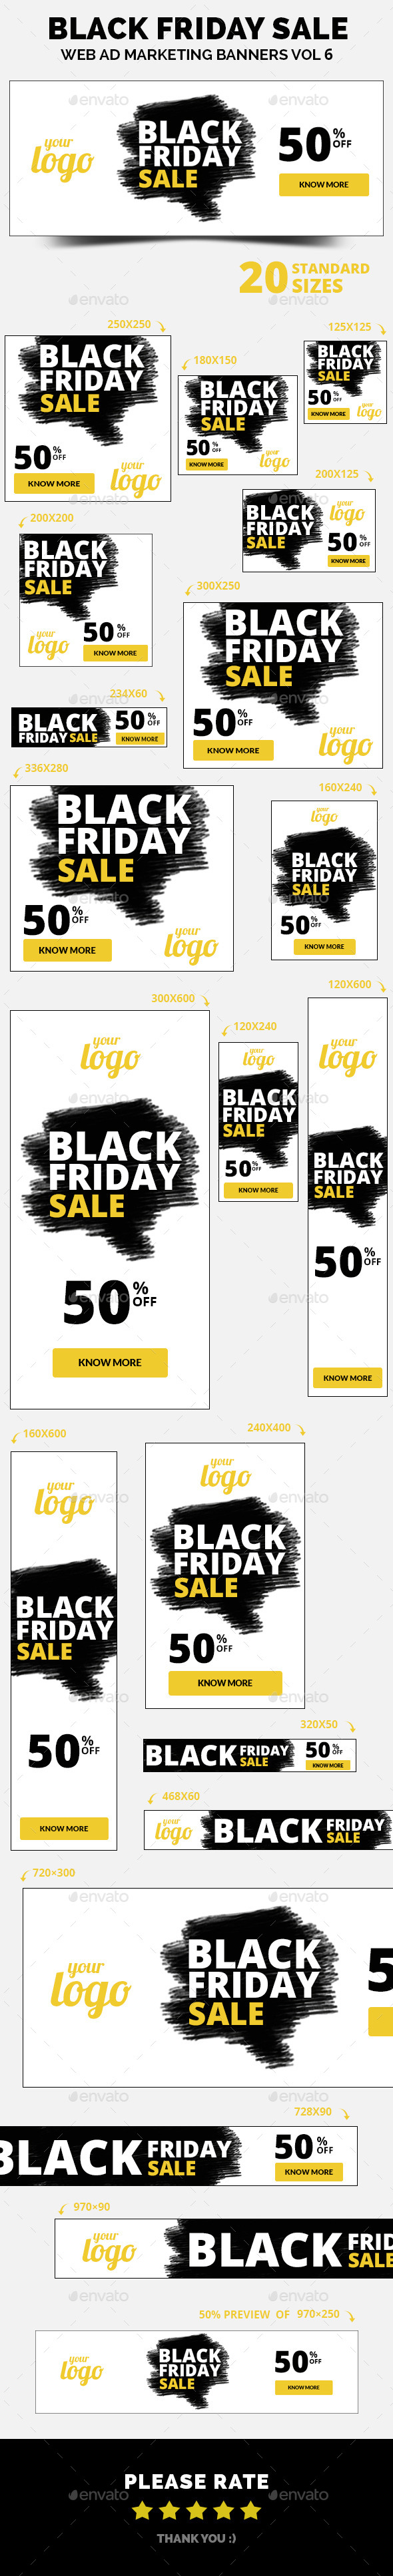 Black Friday Sale Web Ad Marketing Banners